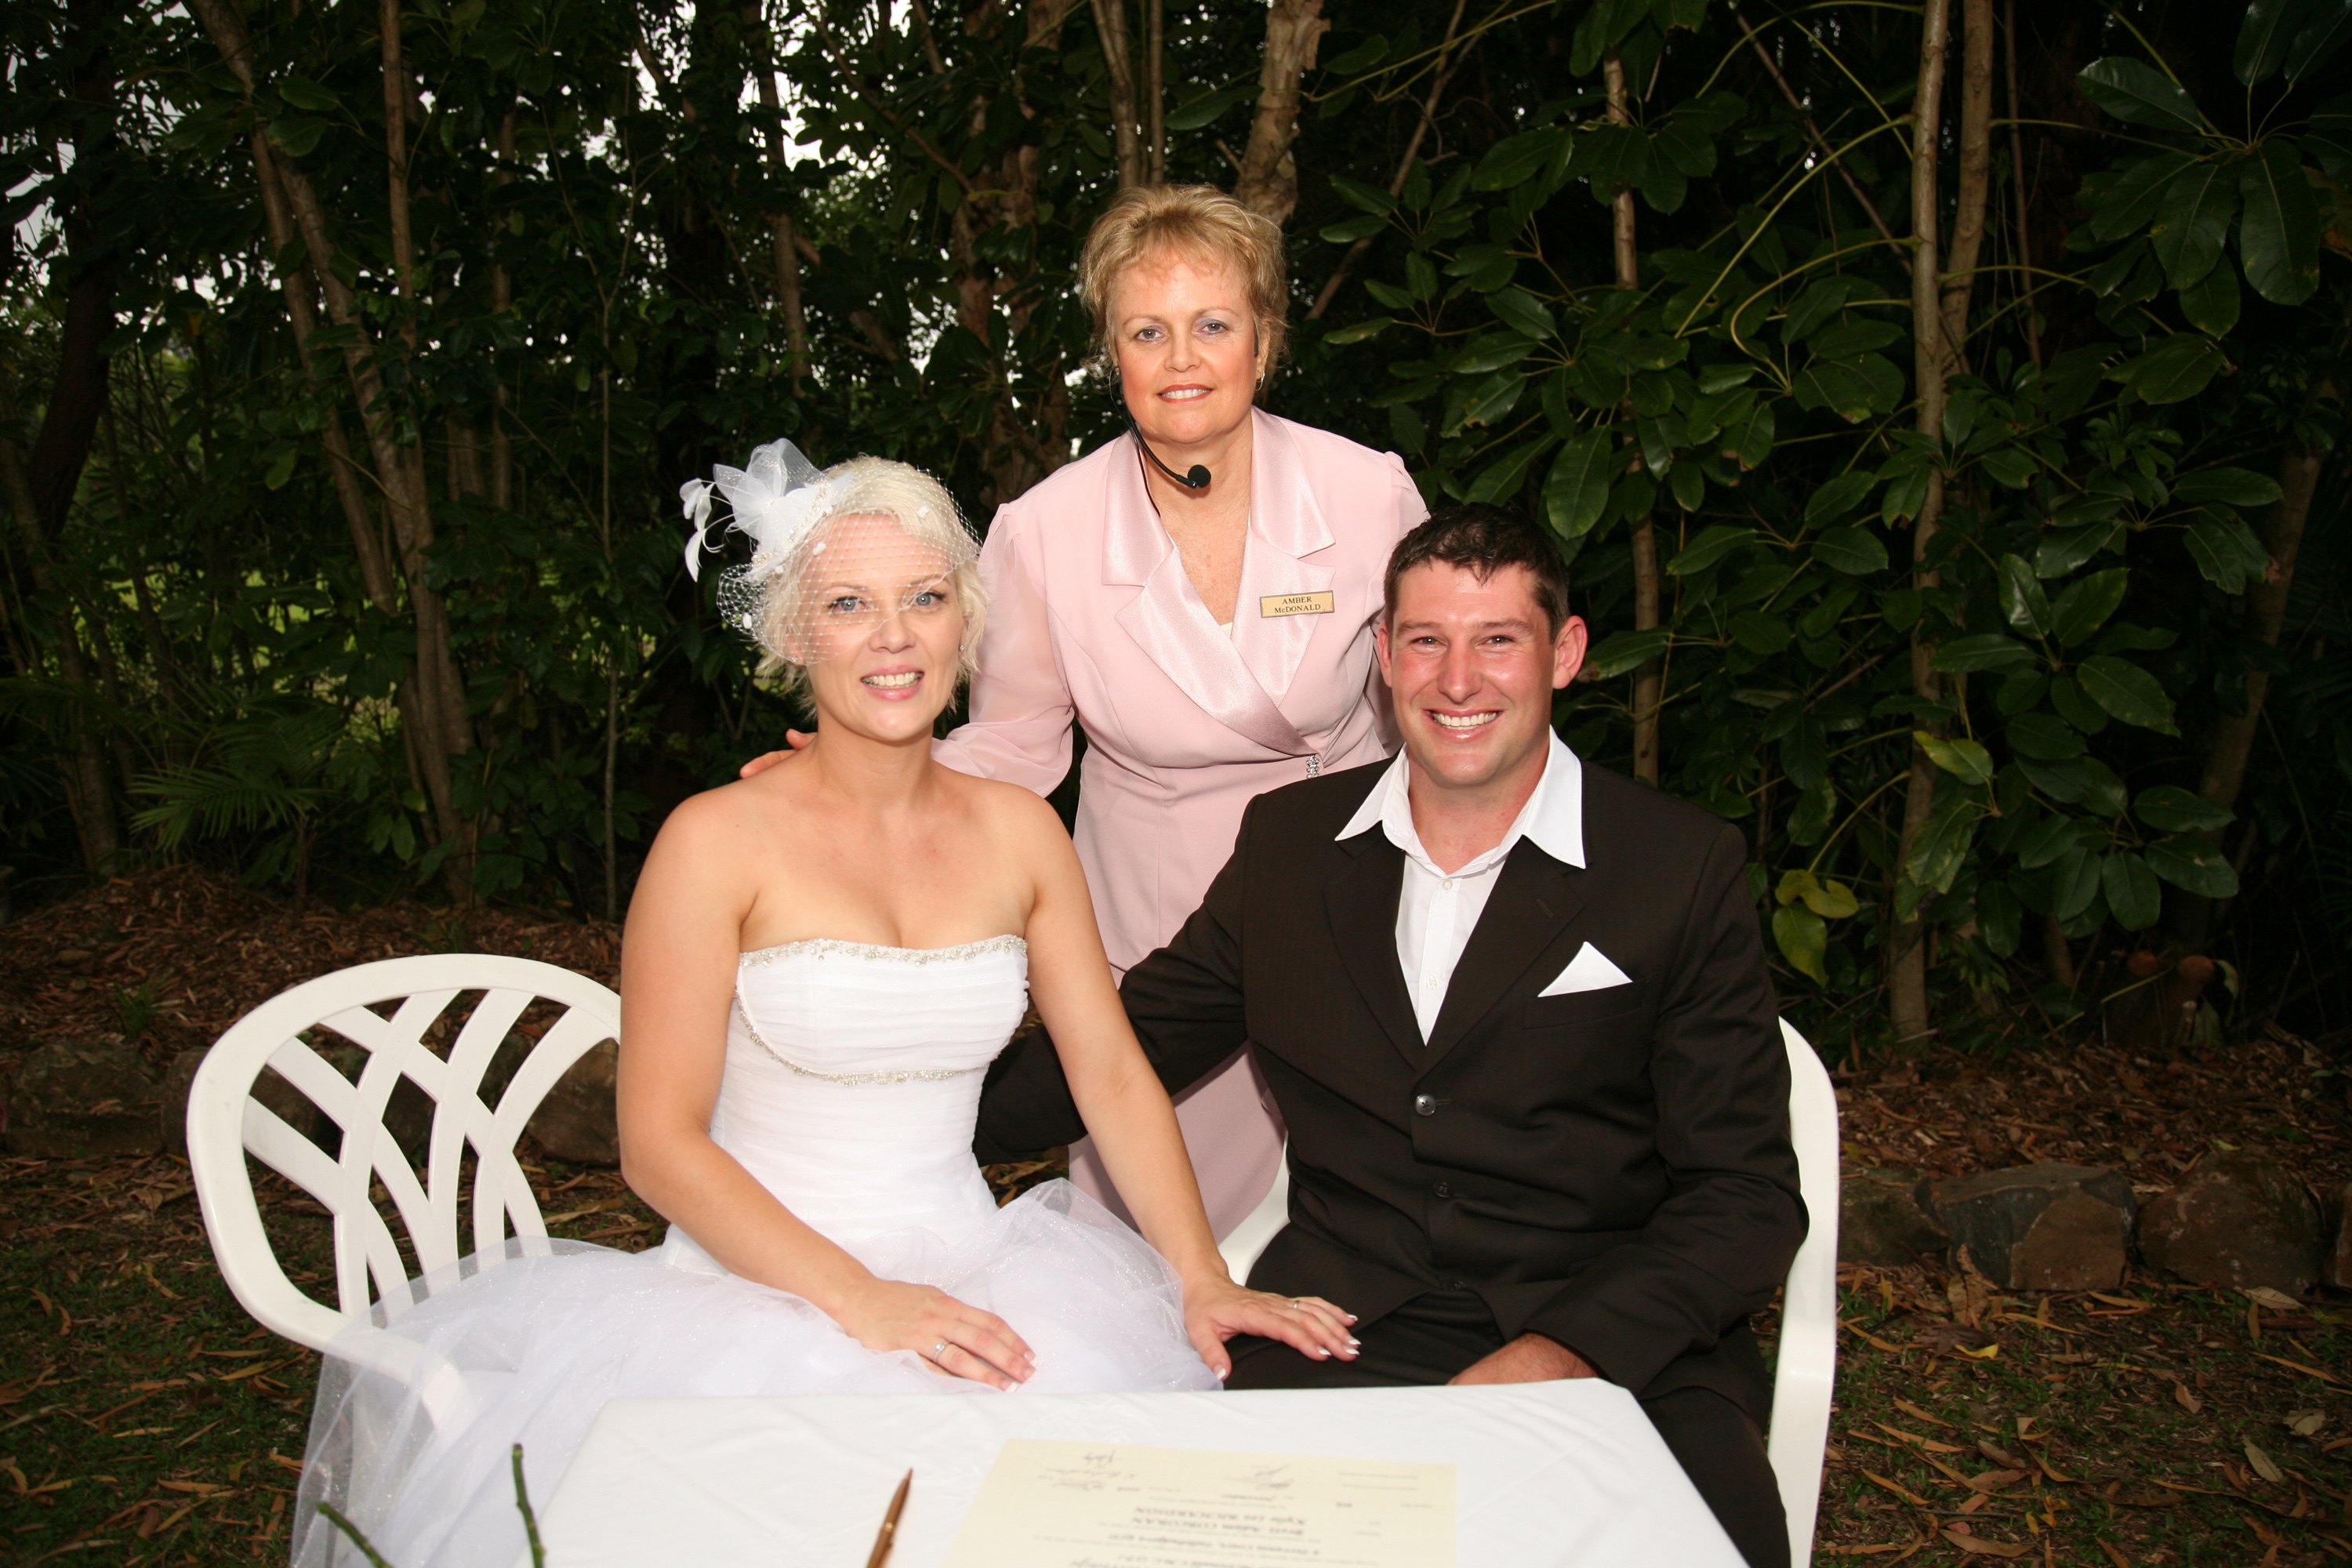 Brett & Kylie - Marriage Celebrant Amber Everingham